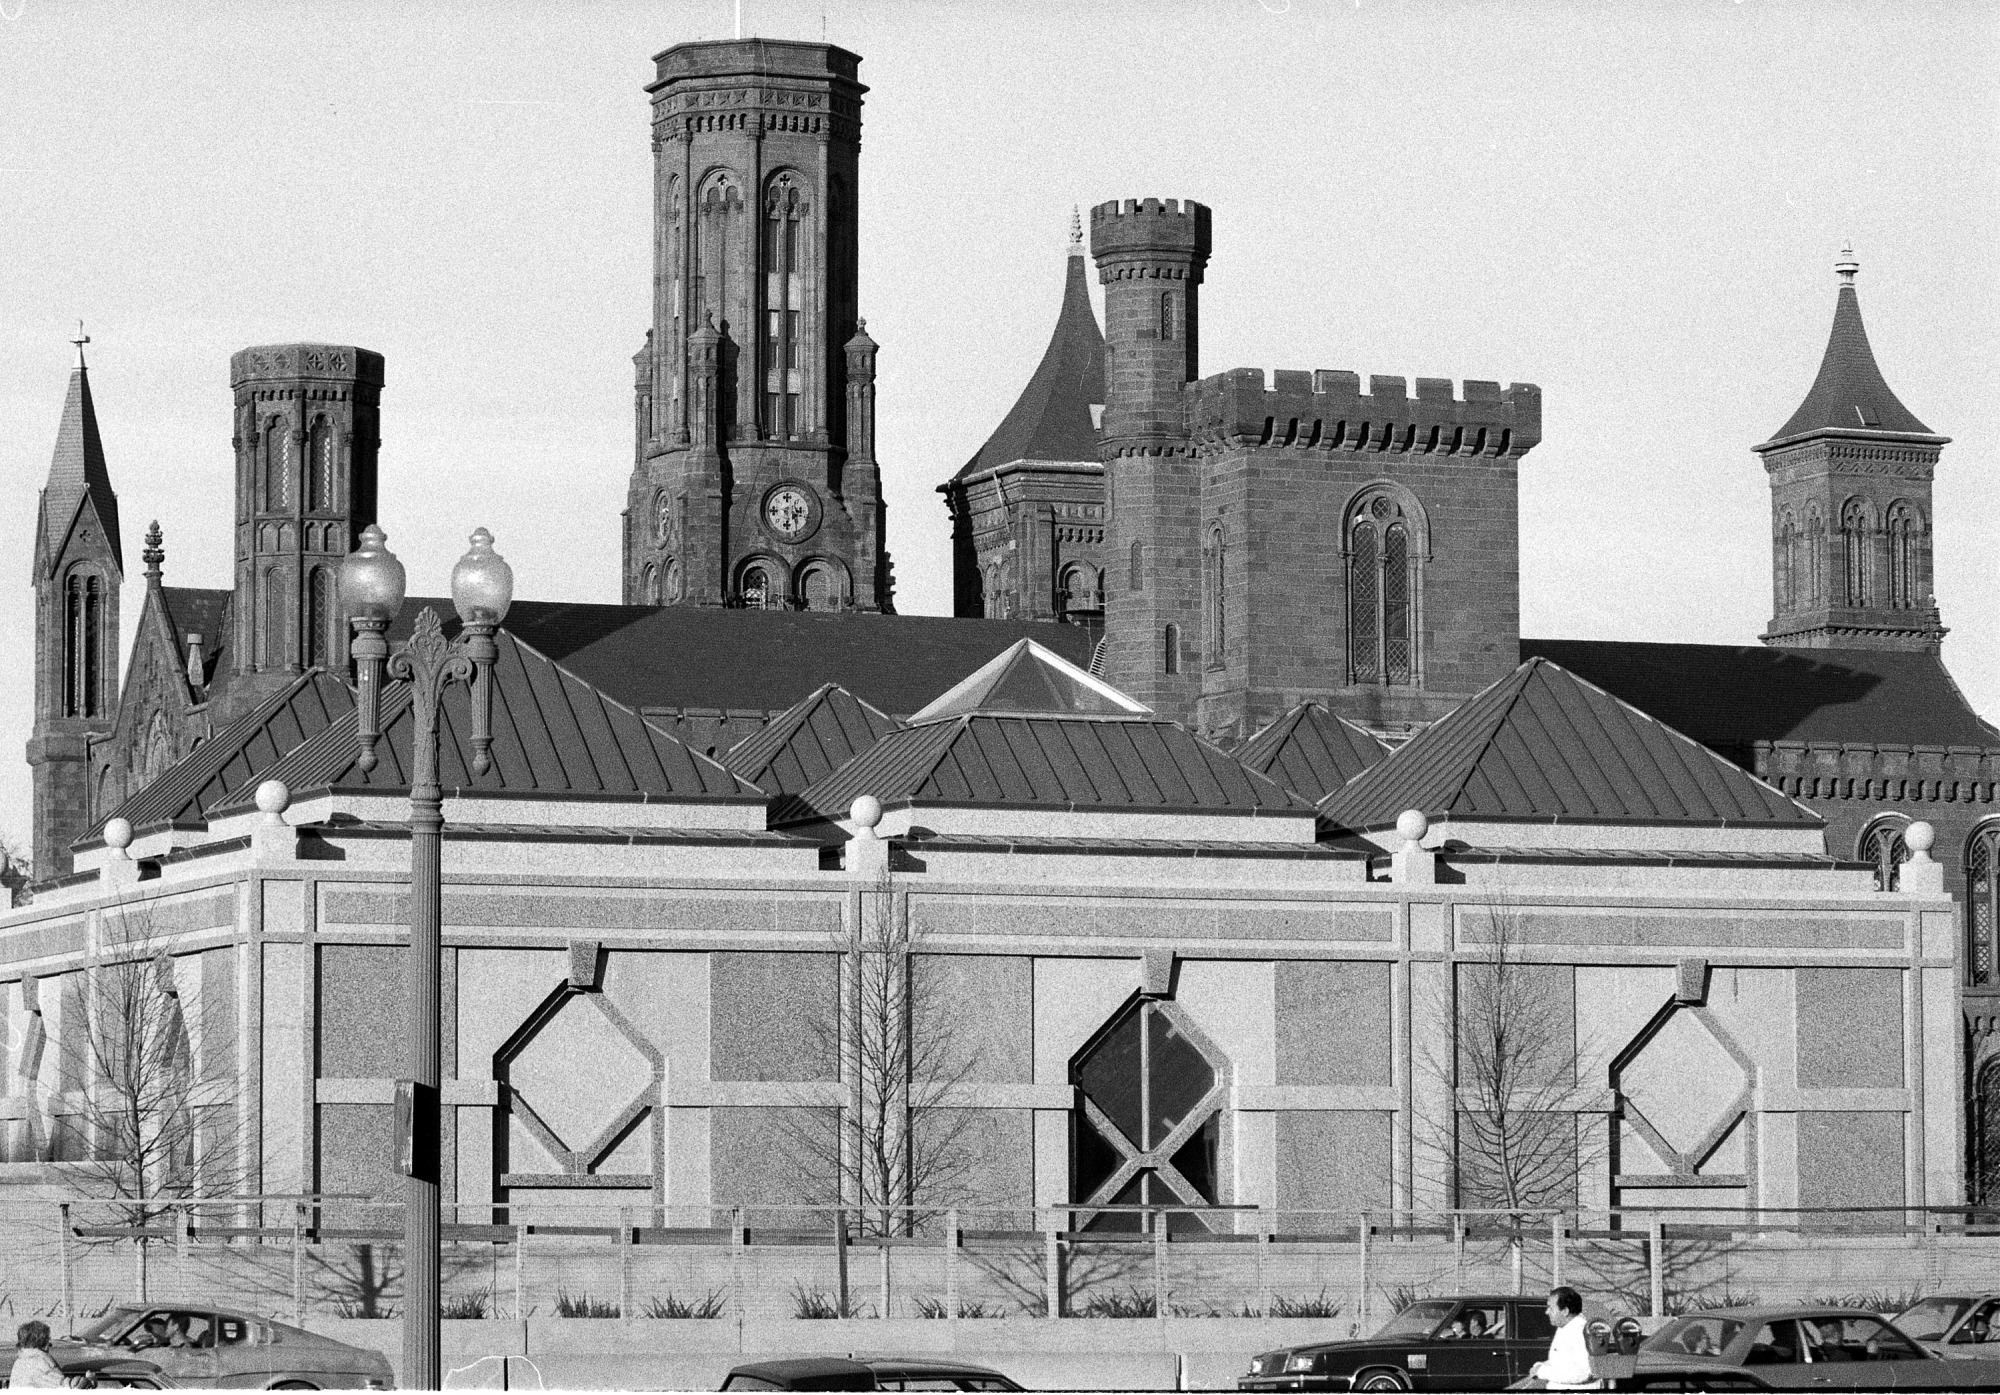 Sackler Pavilion, by Unknown, 1986, Smithsonian Archives - History Div, 86-14688-5 or 86-14688.05.